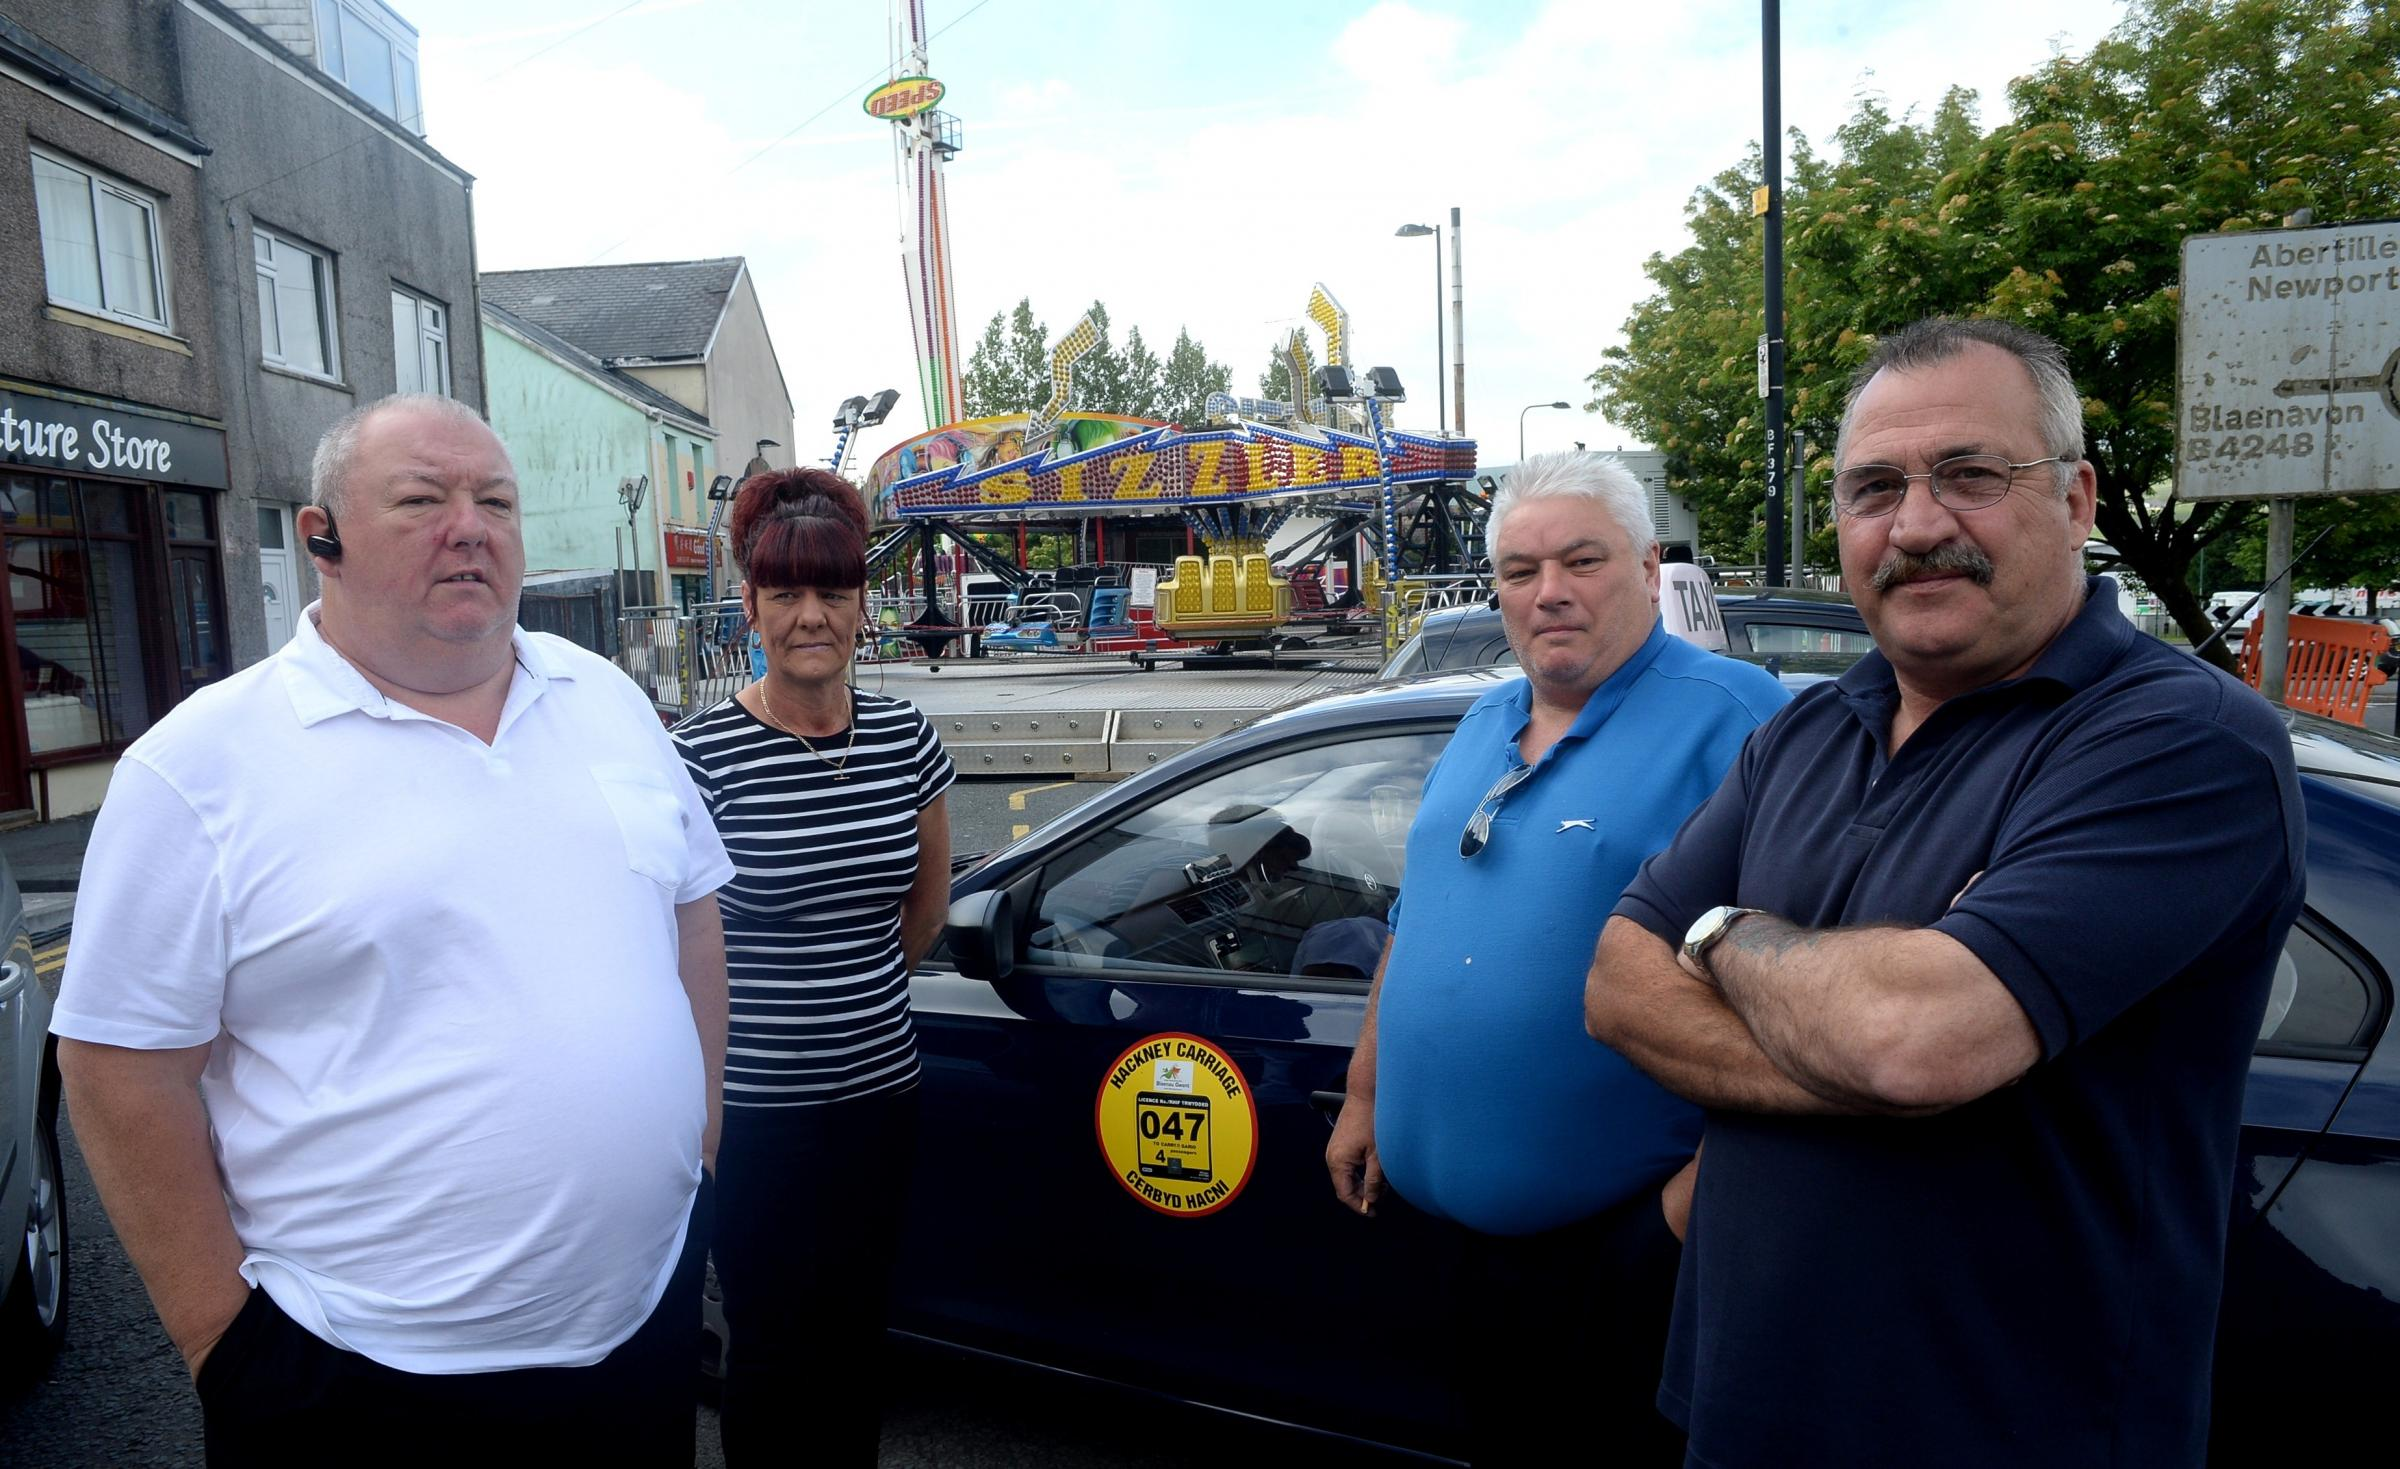 BUSINESS DOWN Taxi drivers are angry that Brynmawr fair is affecting trade and causing chaos.Pictured from left, are Alan Morrell, Alison Gwillym, Tim Roberts and Mike Powell (7267504)